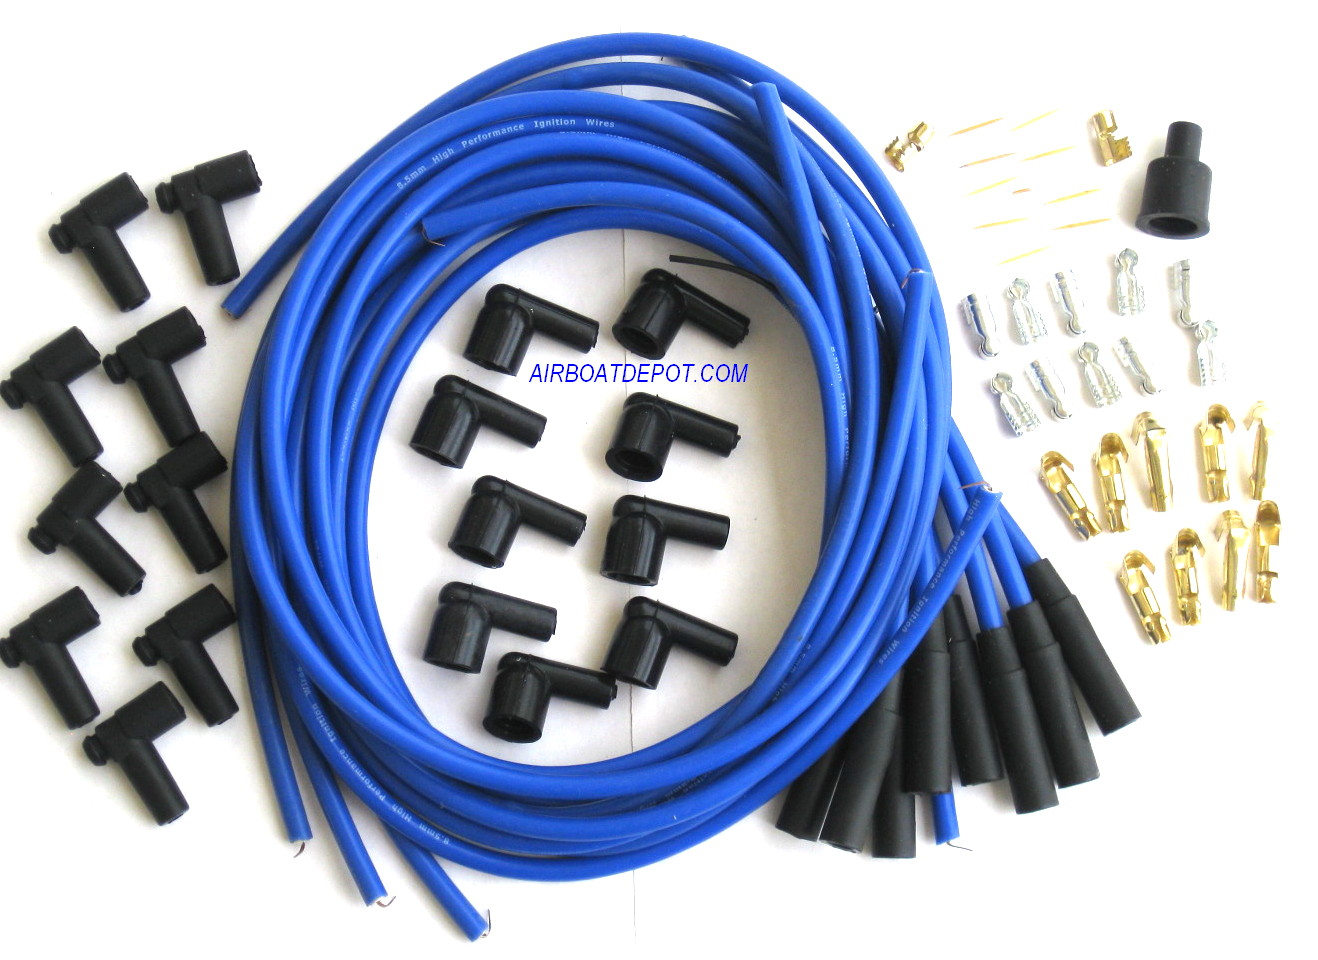 Spark Plug Wire Set, Blue, Boot/Plugs, 8.5mm 180º, Rated at 600ºF on